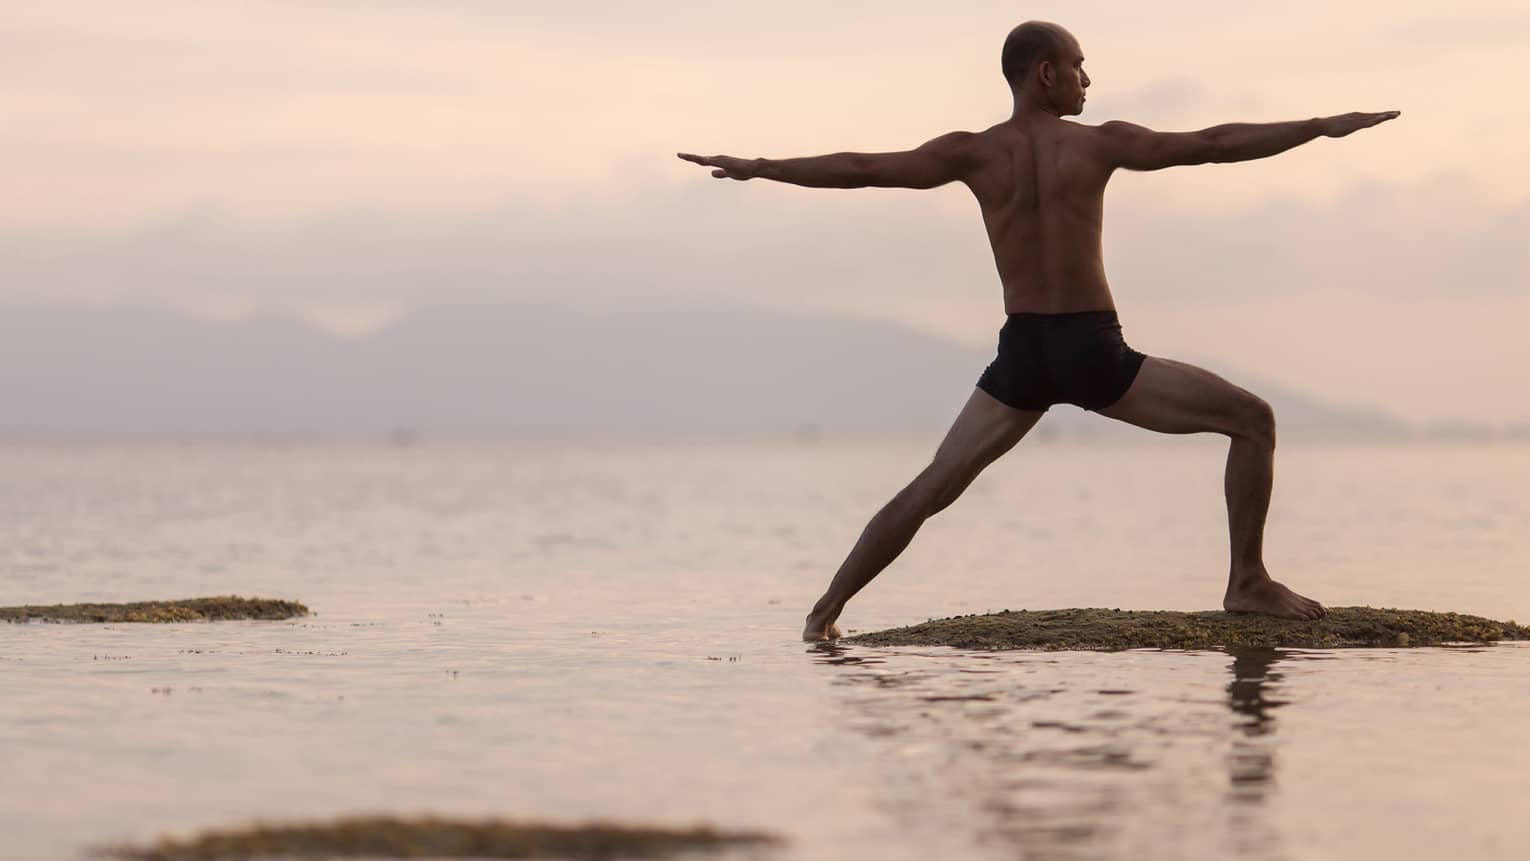 Silhouette of man in swimsuit doing yoga pose on sandbar in ocean at sunset